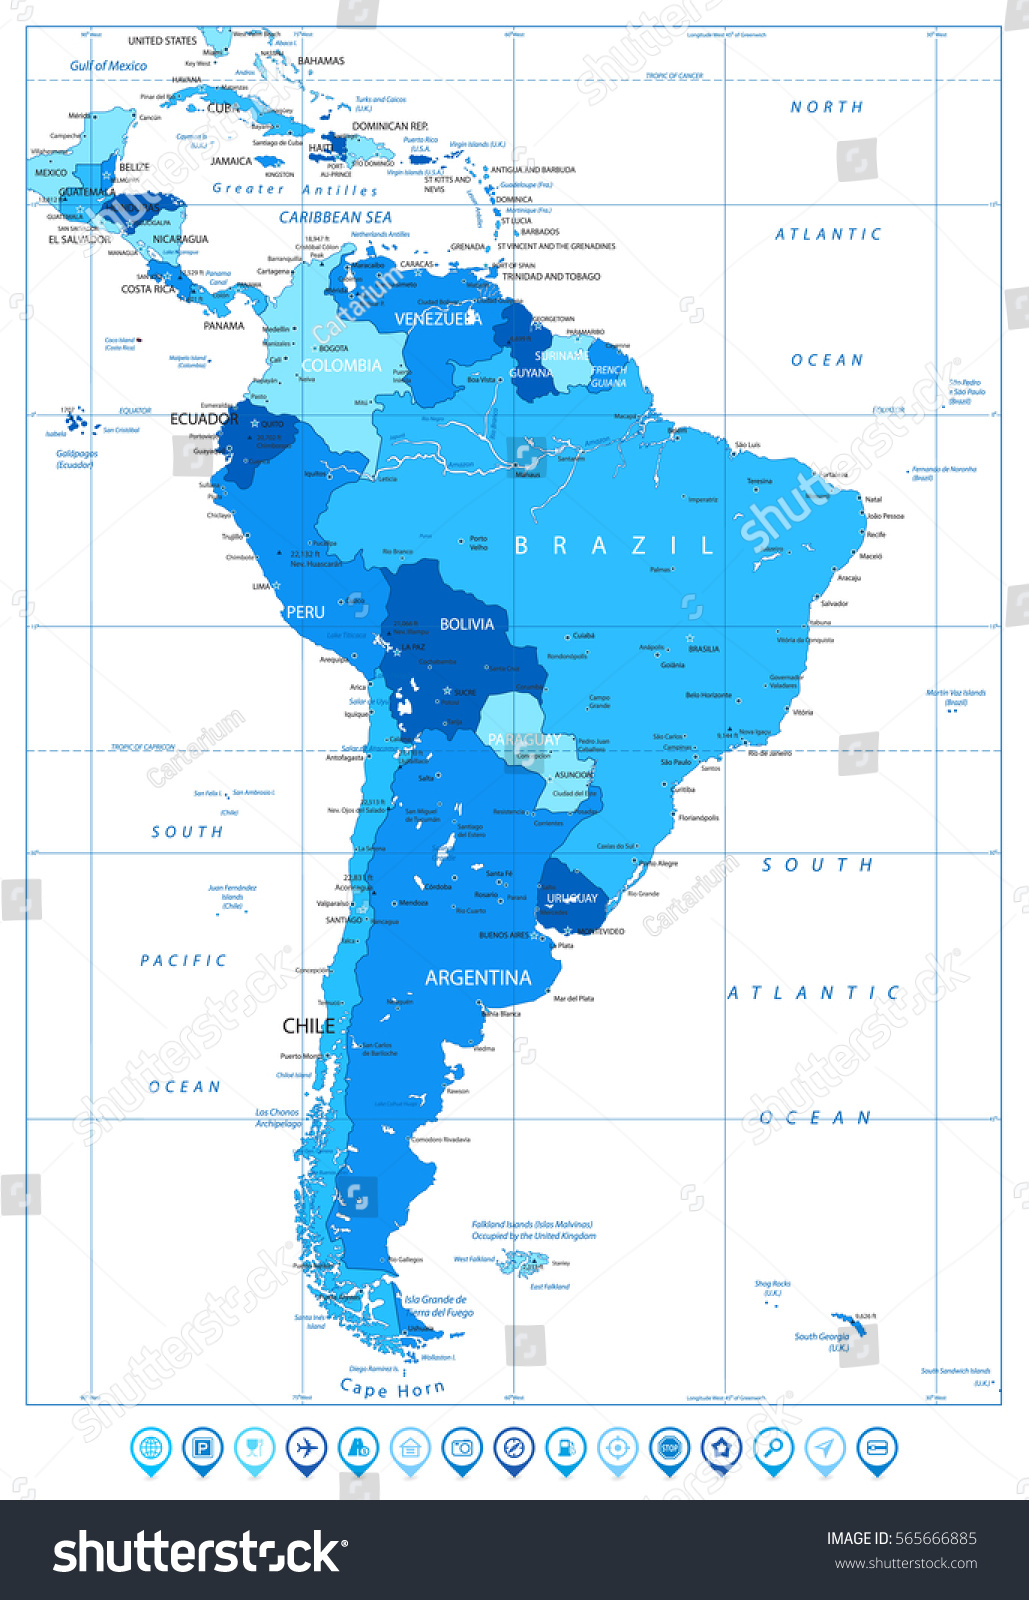 Cape Horn On South America Map.Detailed Map South America Colors Blue Stock Vector Royalty Free